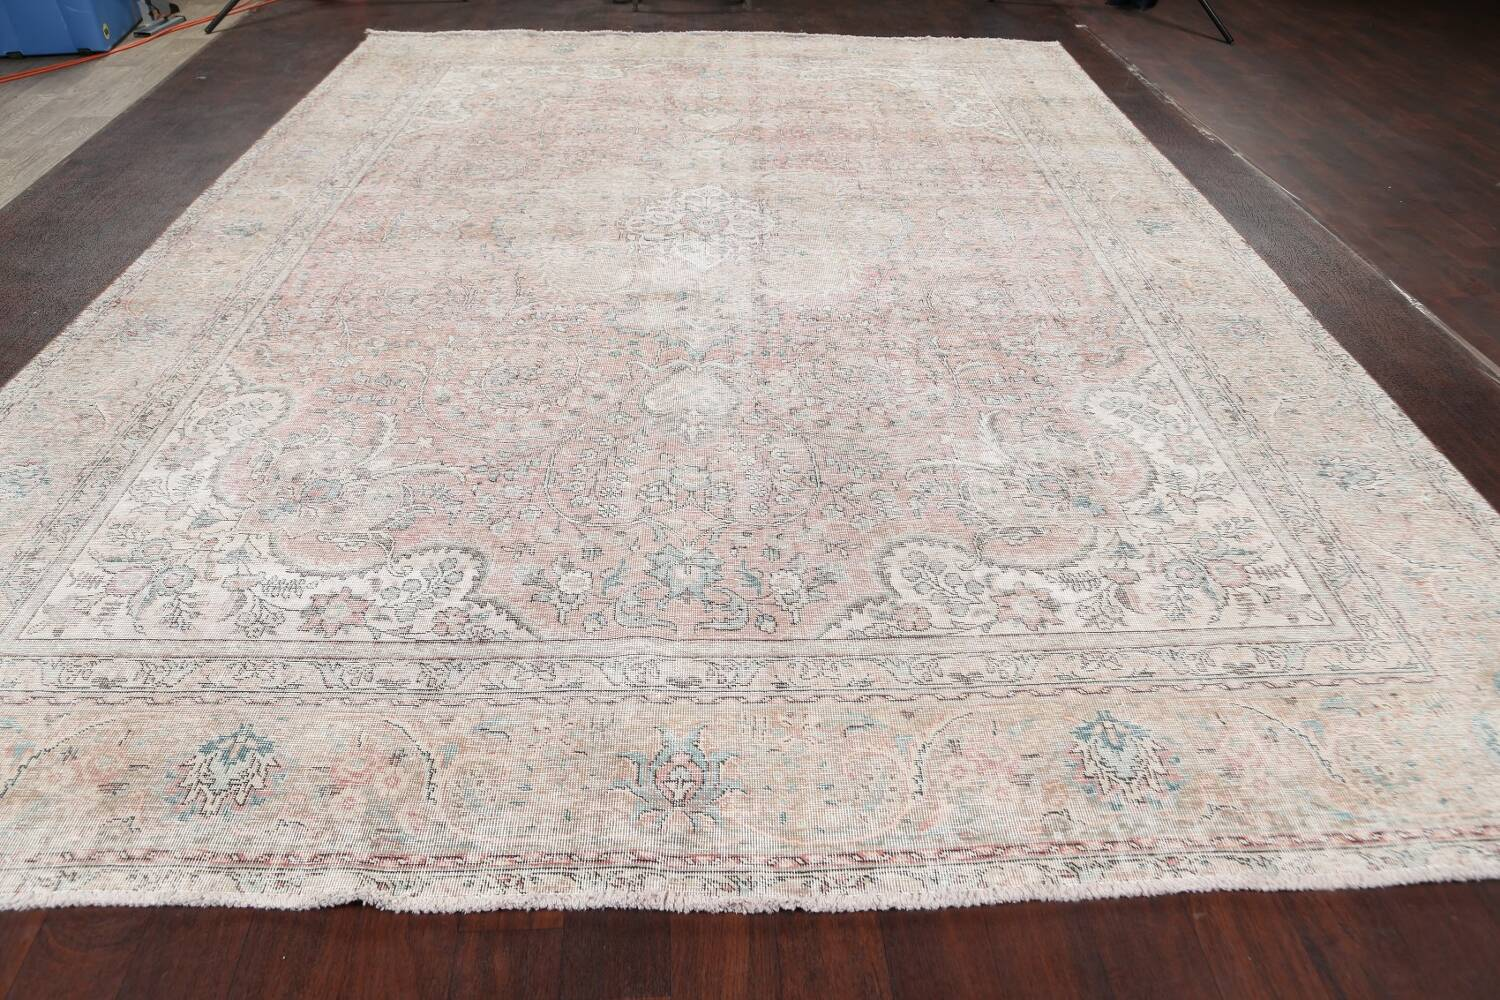 Antique Muted Distressed Tabriz Persian Area Rug 10x13 image 15